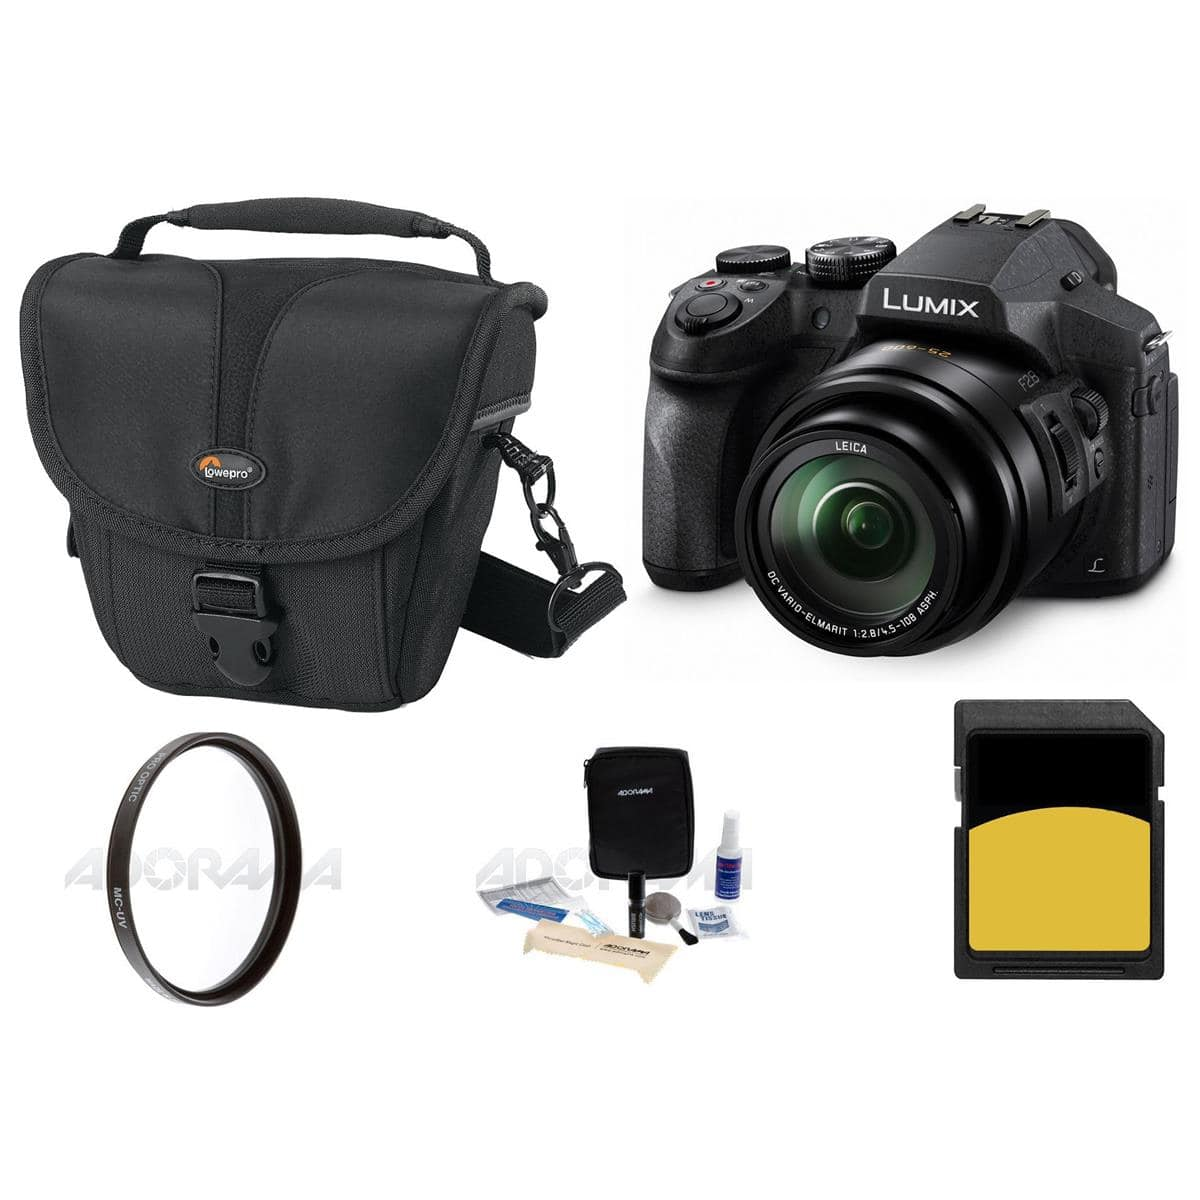 Panasonic Lumix DMC-FZ300 Camera Bundle via Google Express AC $298.49